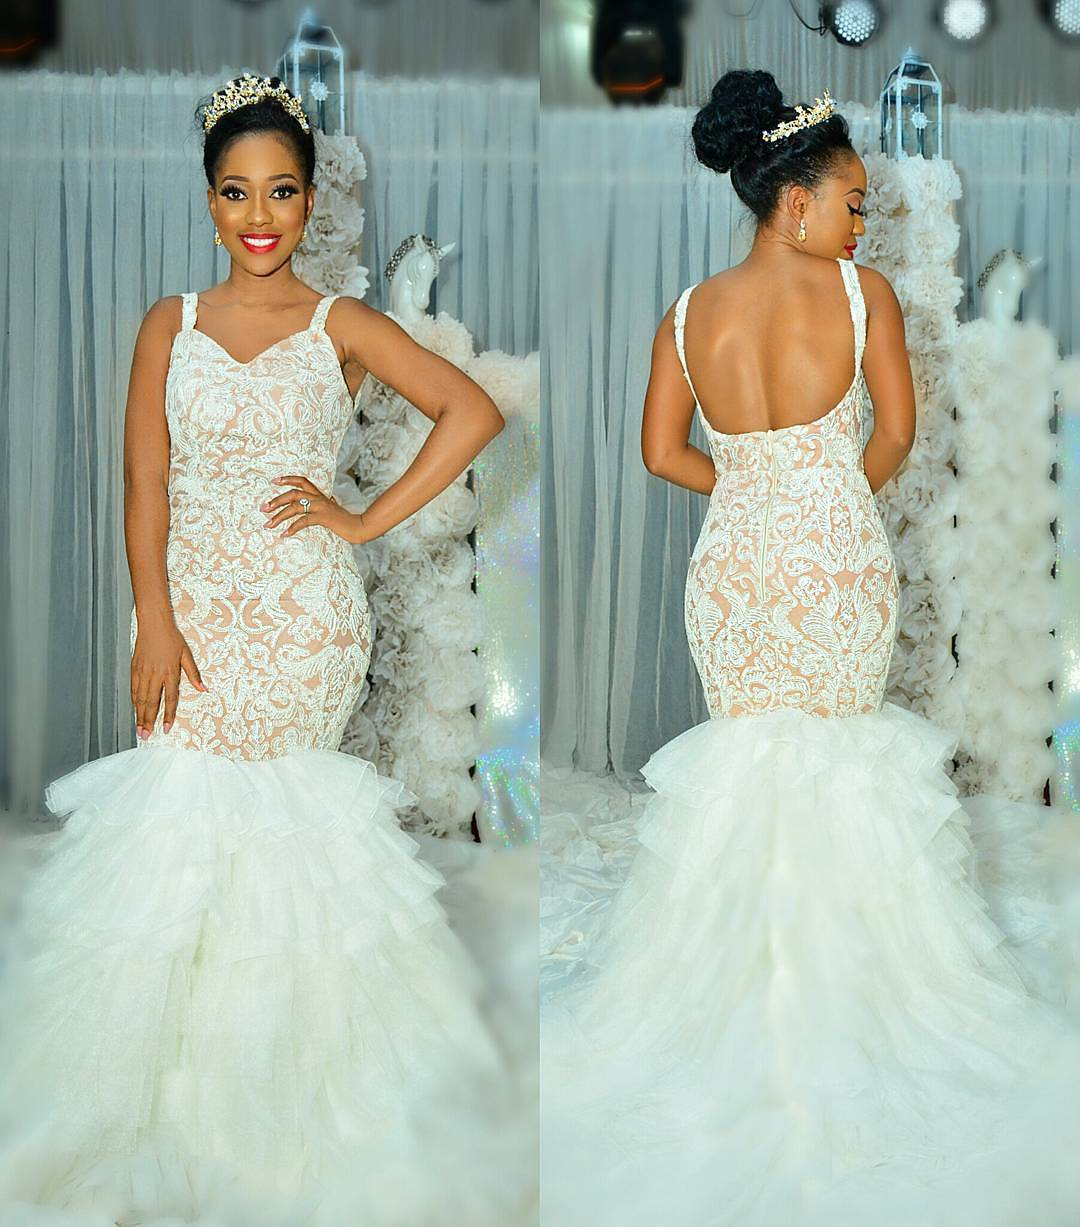 The Bride Gowns For Wedding Reception: Sweet Wedding Reception Dresses